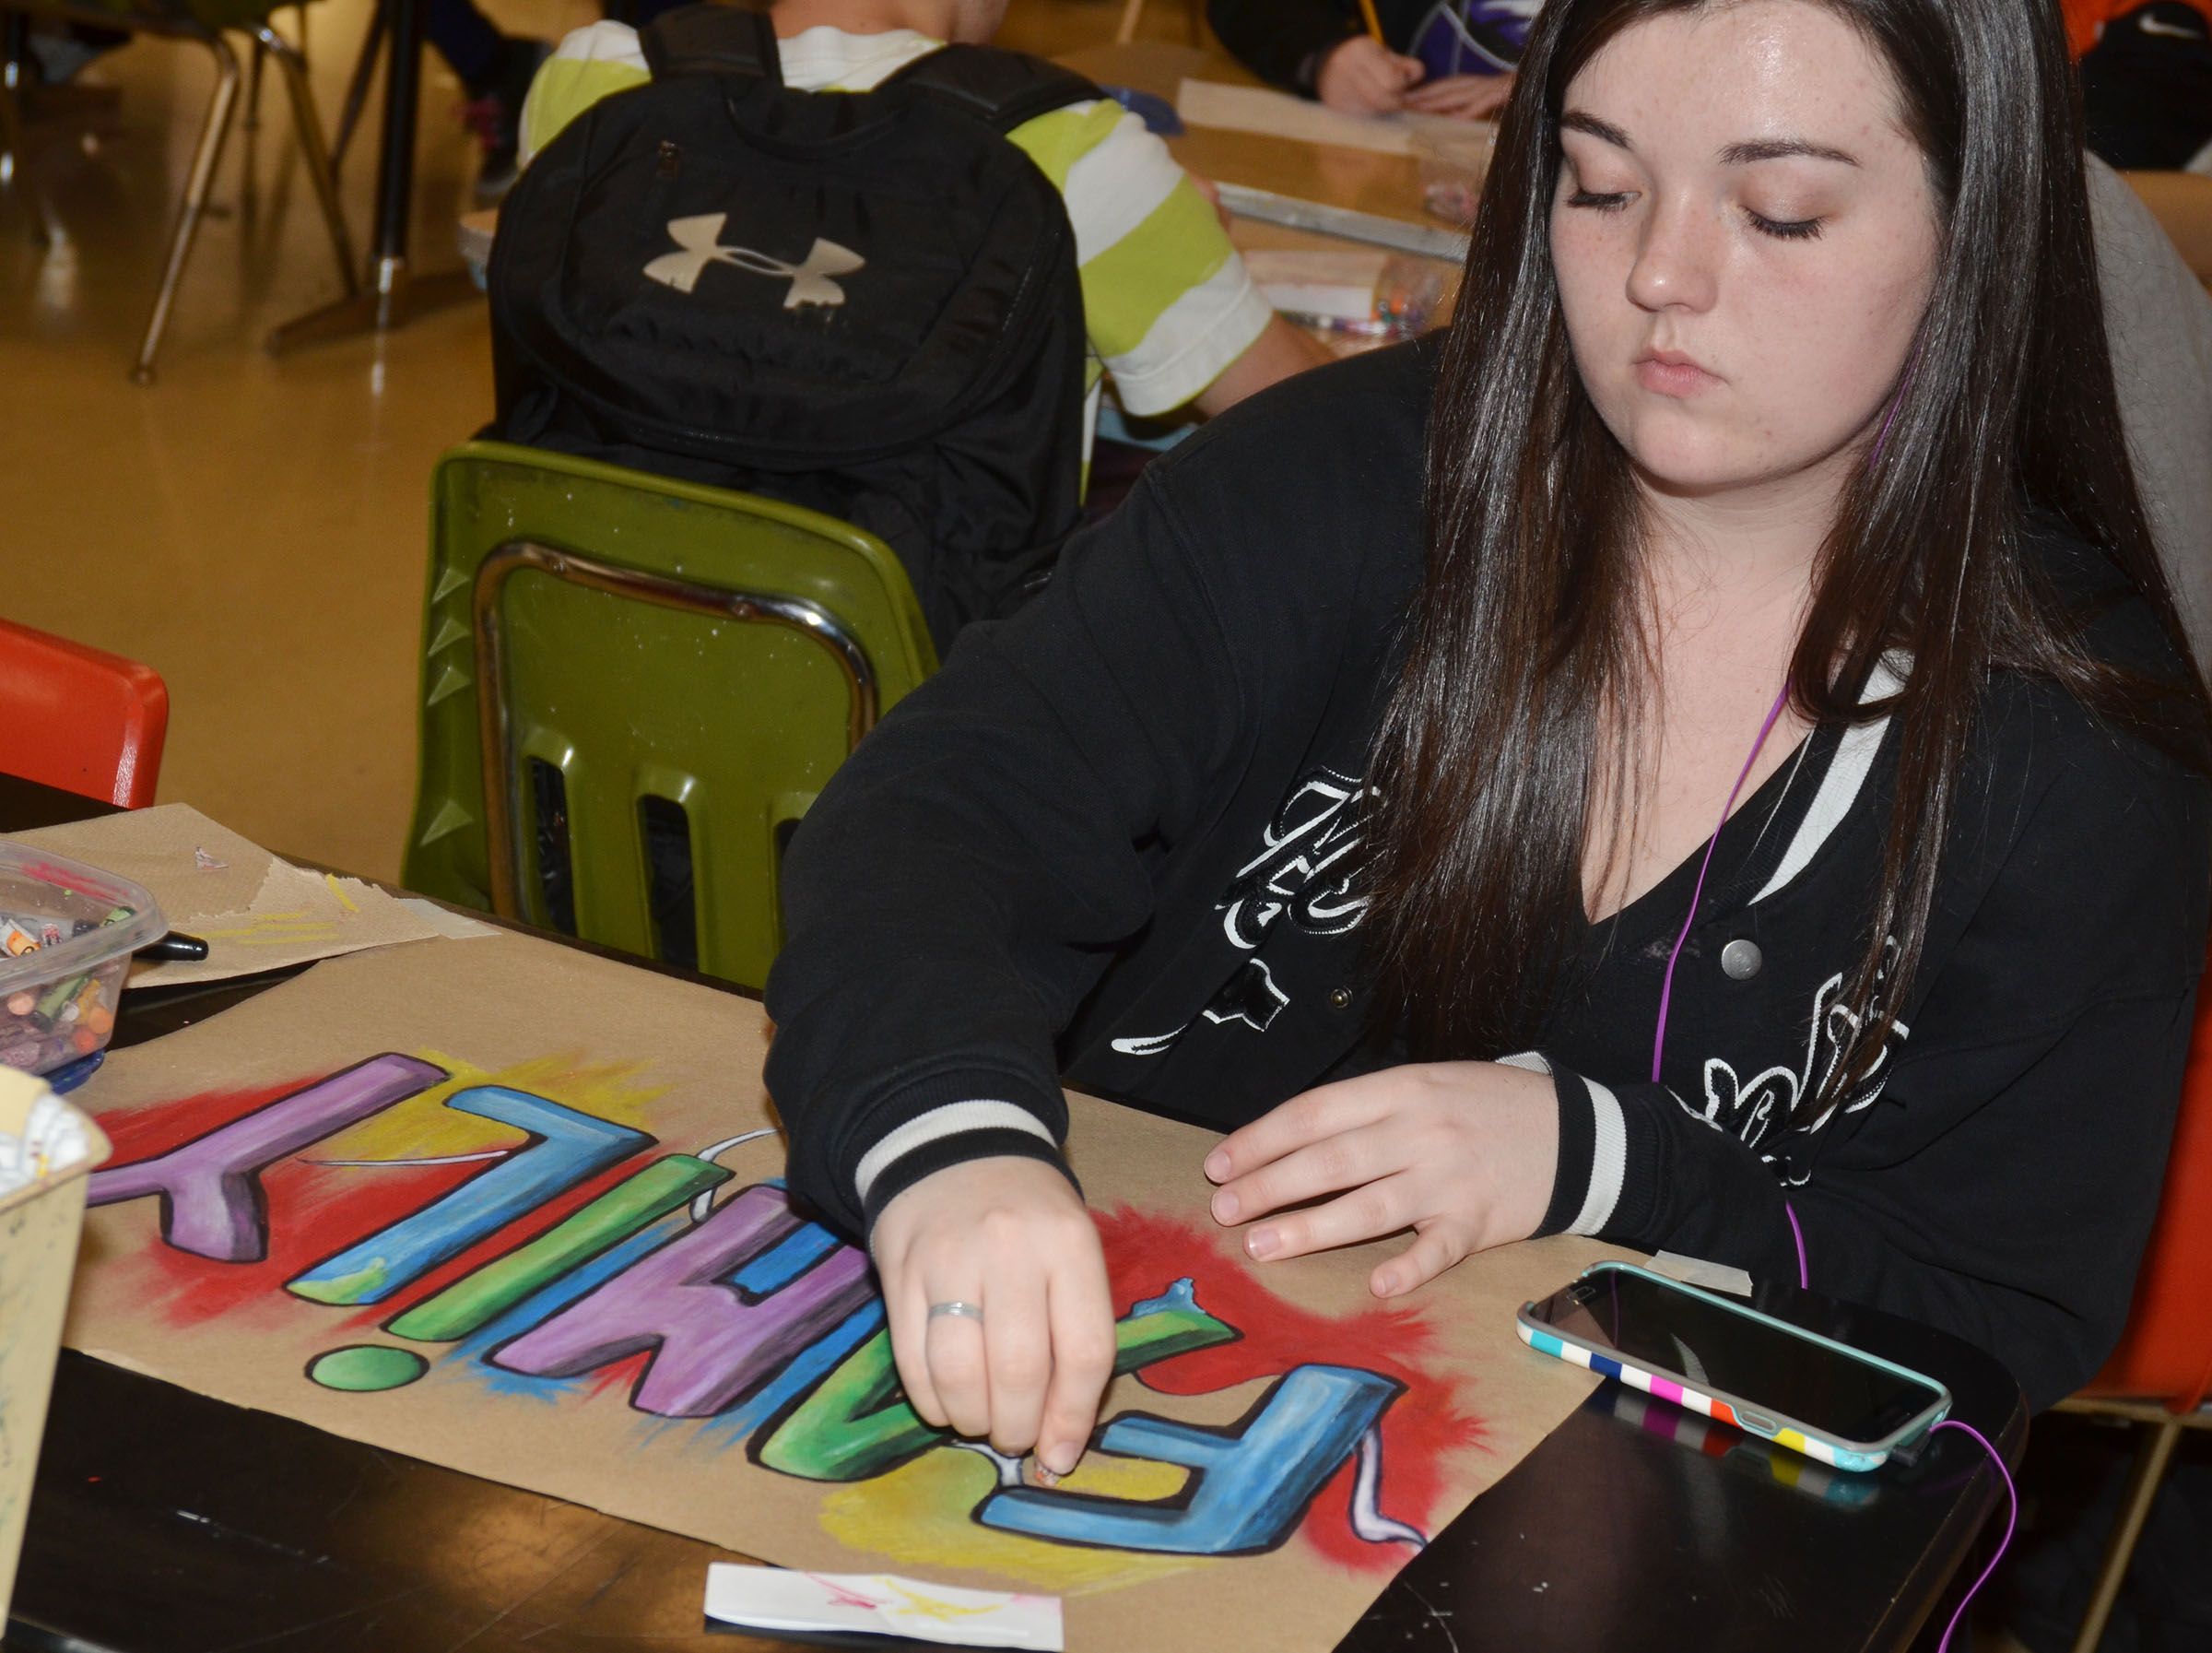 CHS senior Tiffany Stagner puts finishing touches on her graffiti-style art.